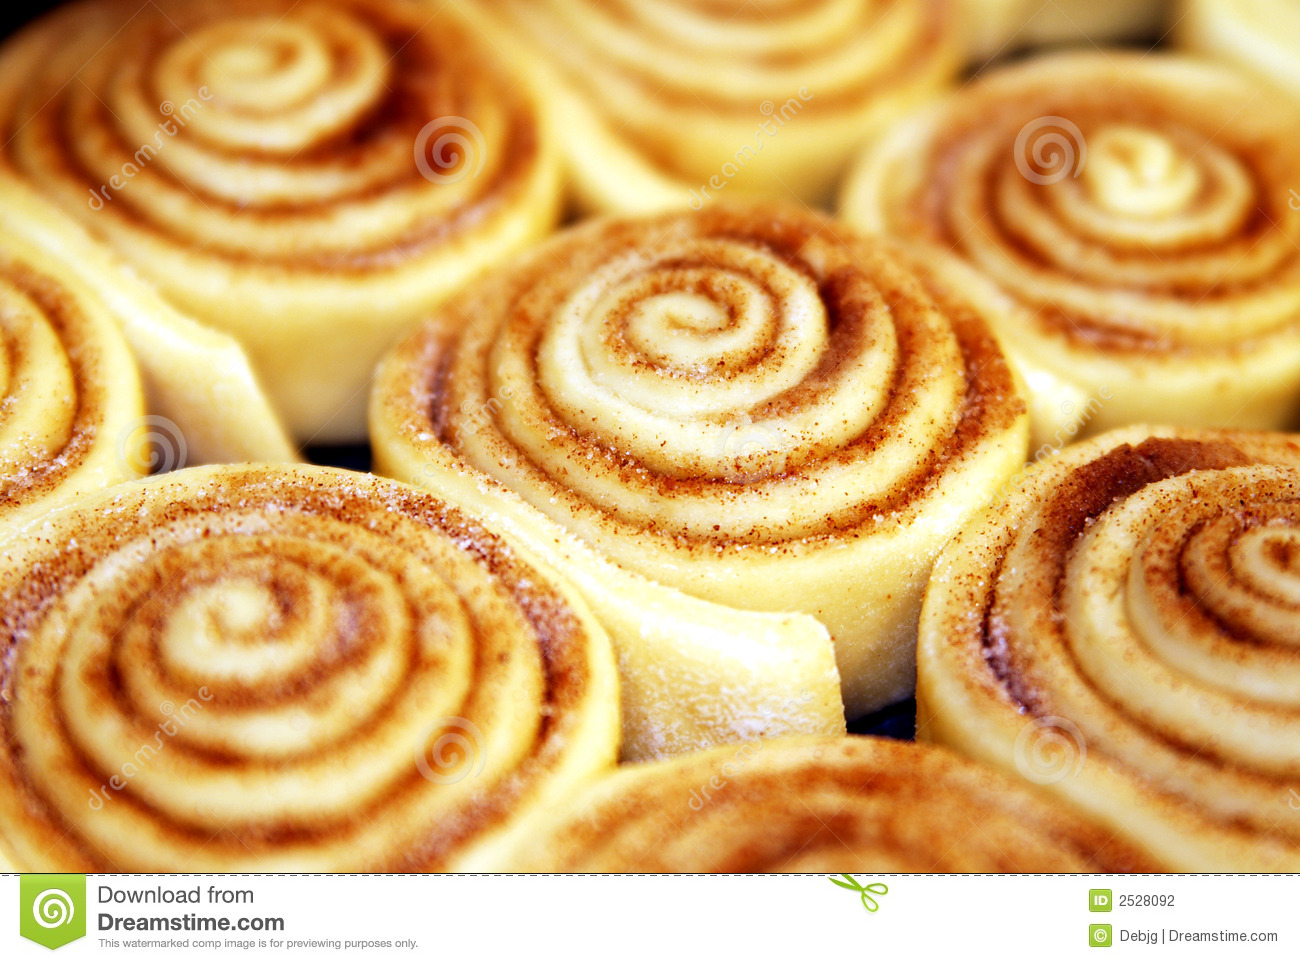 ... rolls bacon cinnamon rolls savory cinnamon rolls apple cinnamon sweet